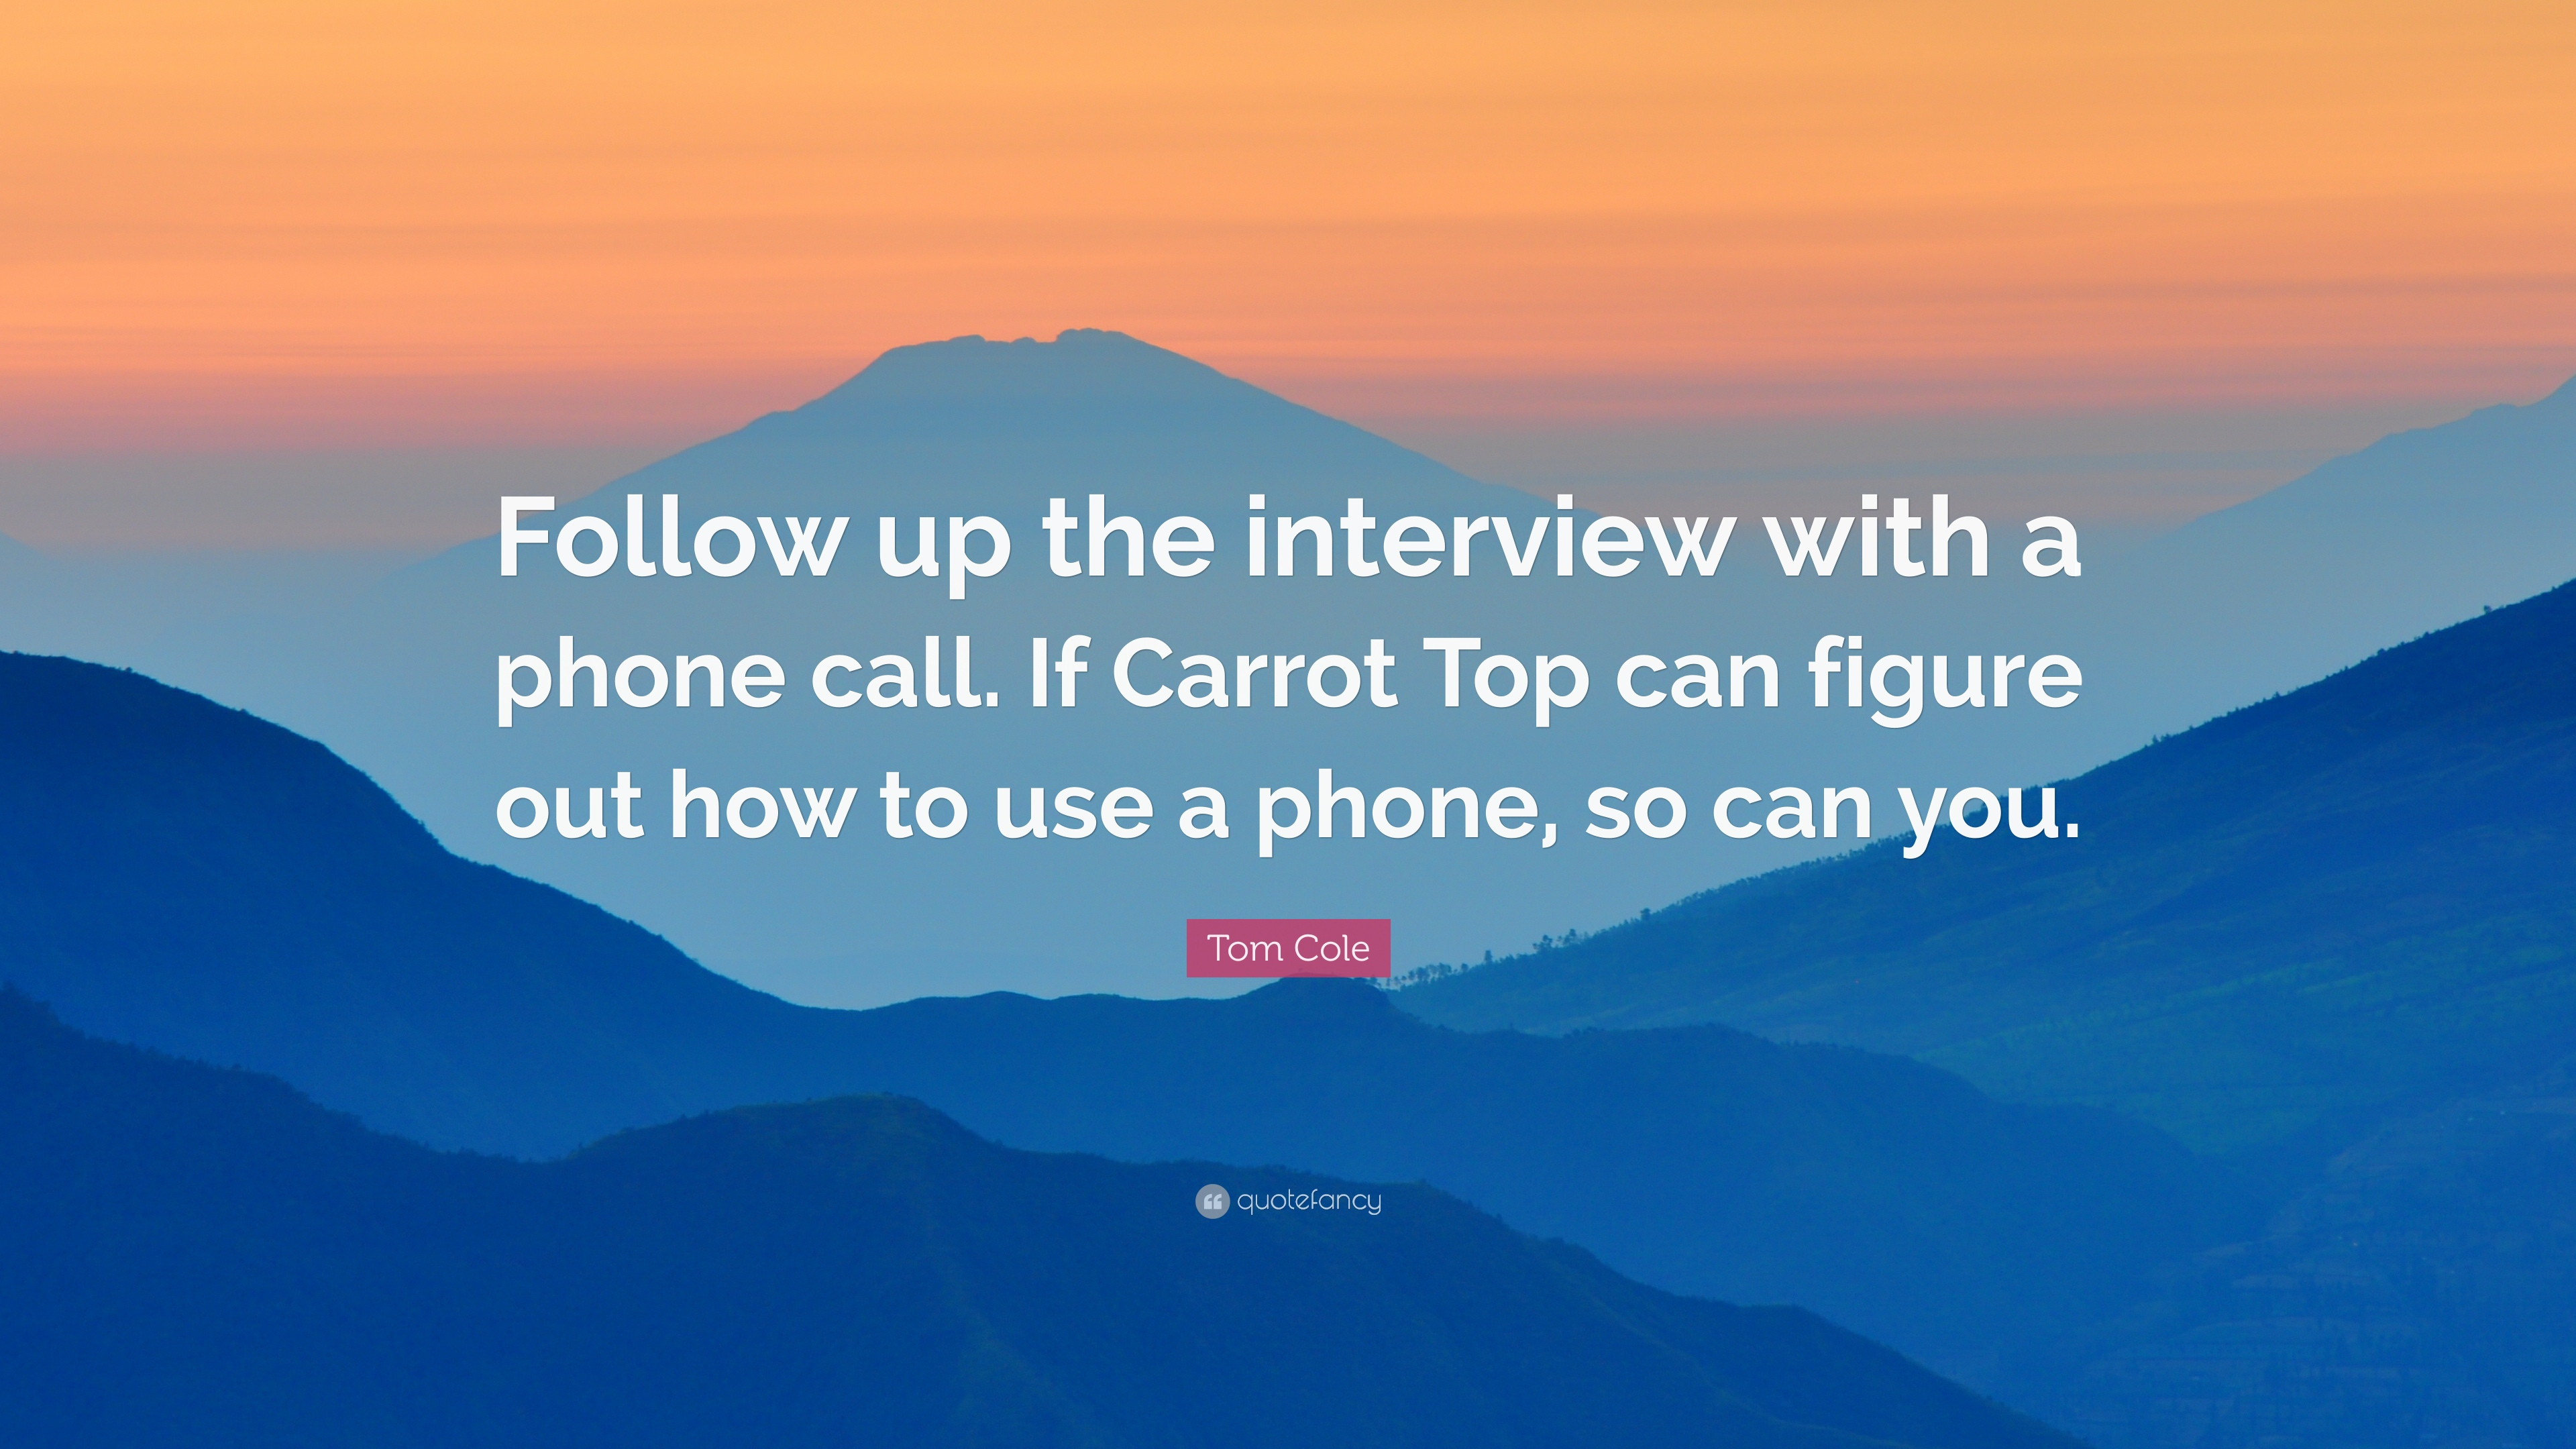 tom cole quotes 12 quotefancy tom cole quote follow up the interview a phone call if carrot